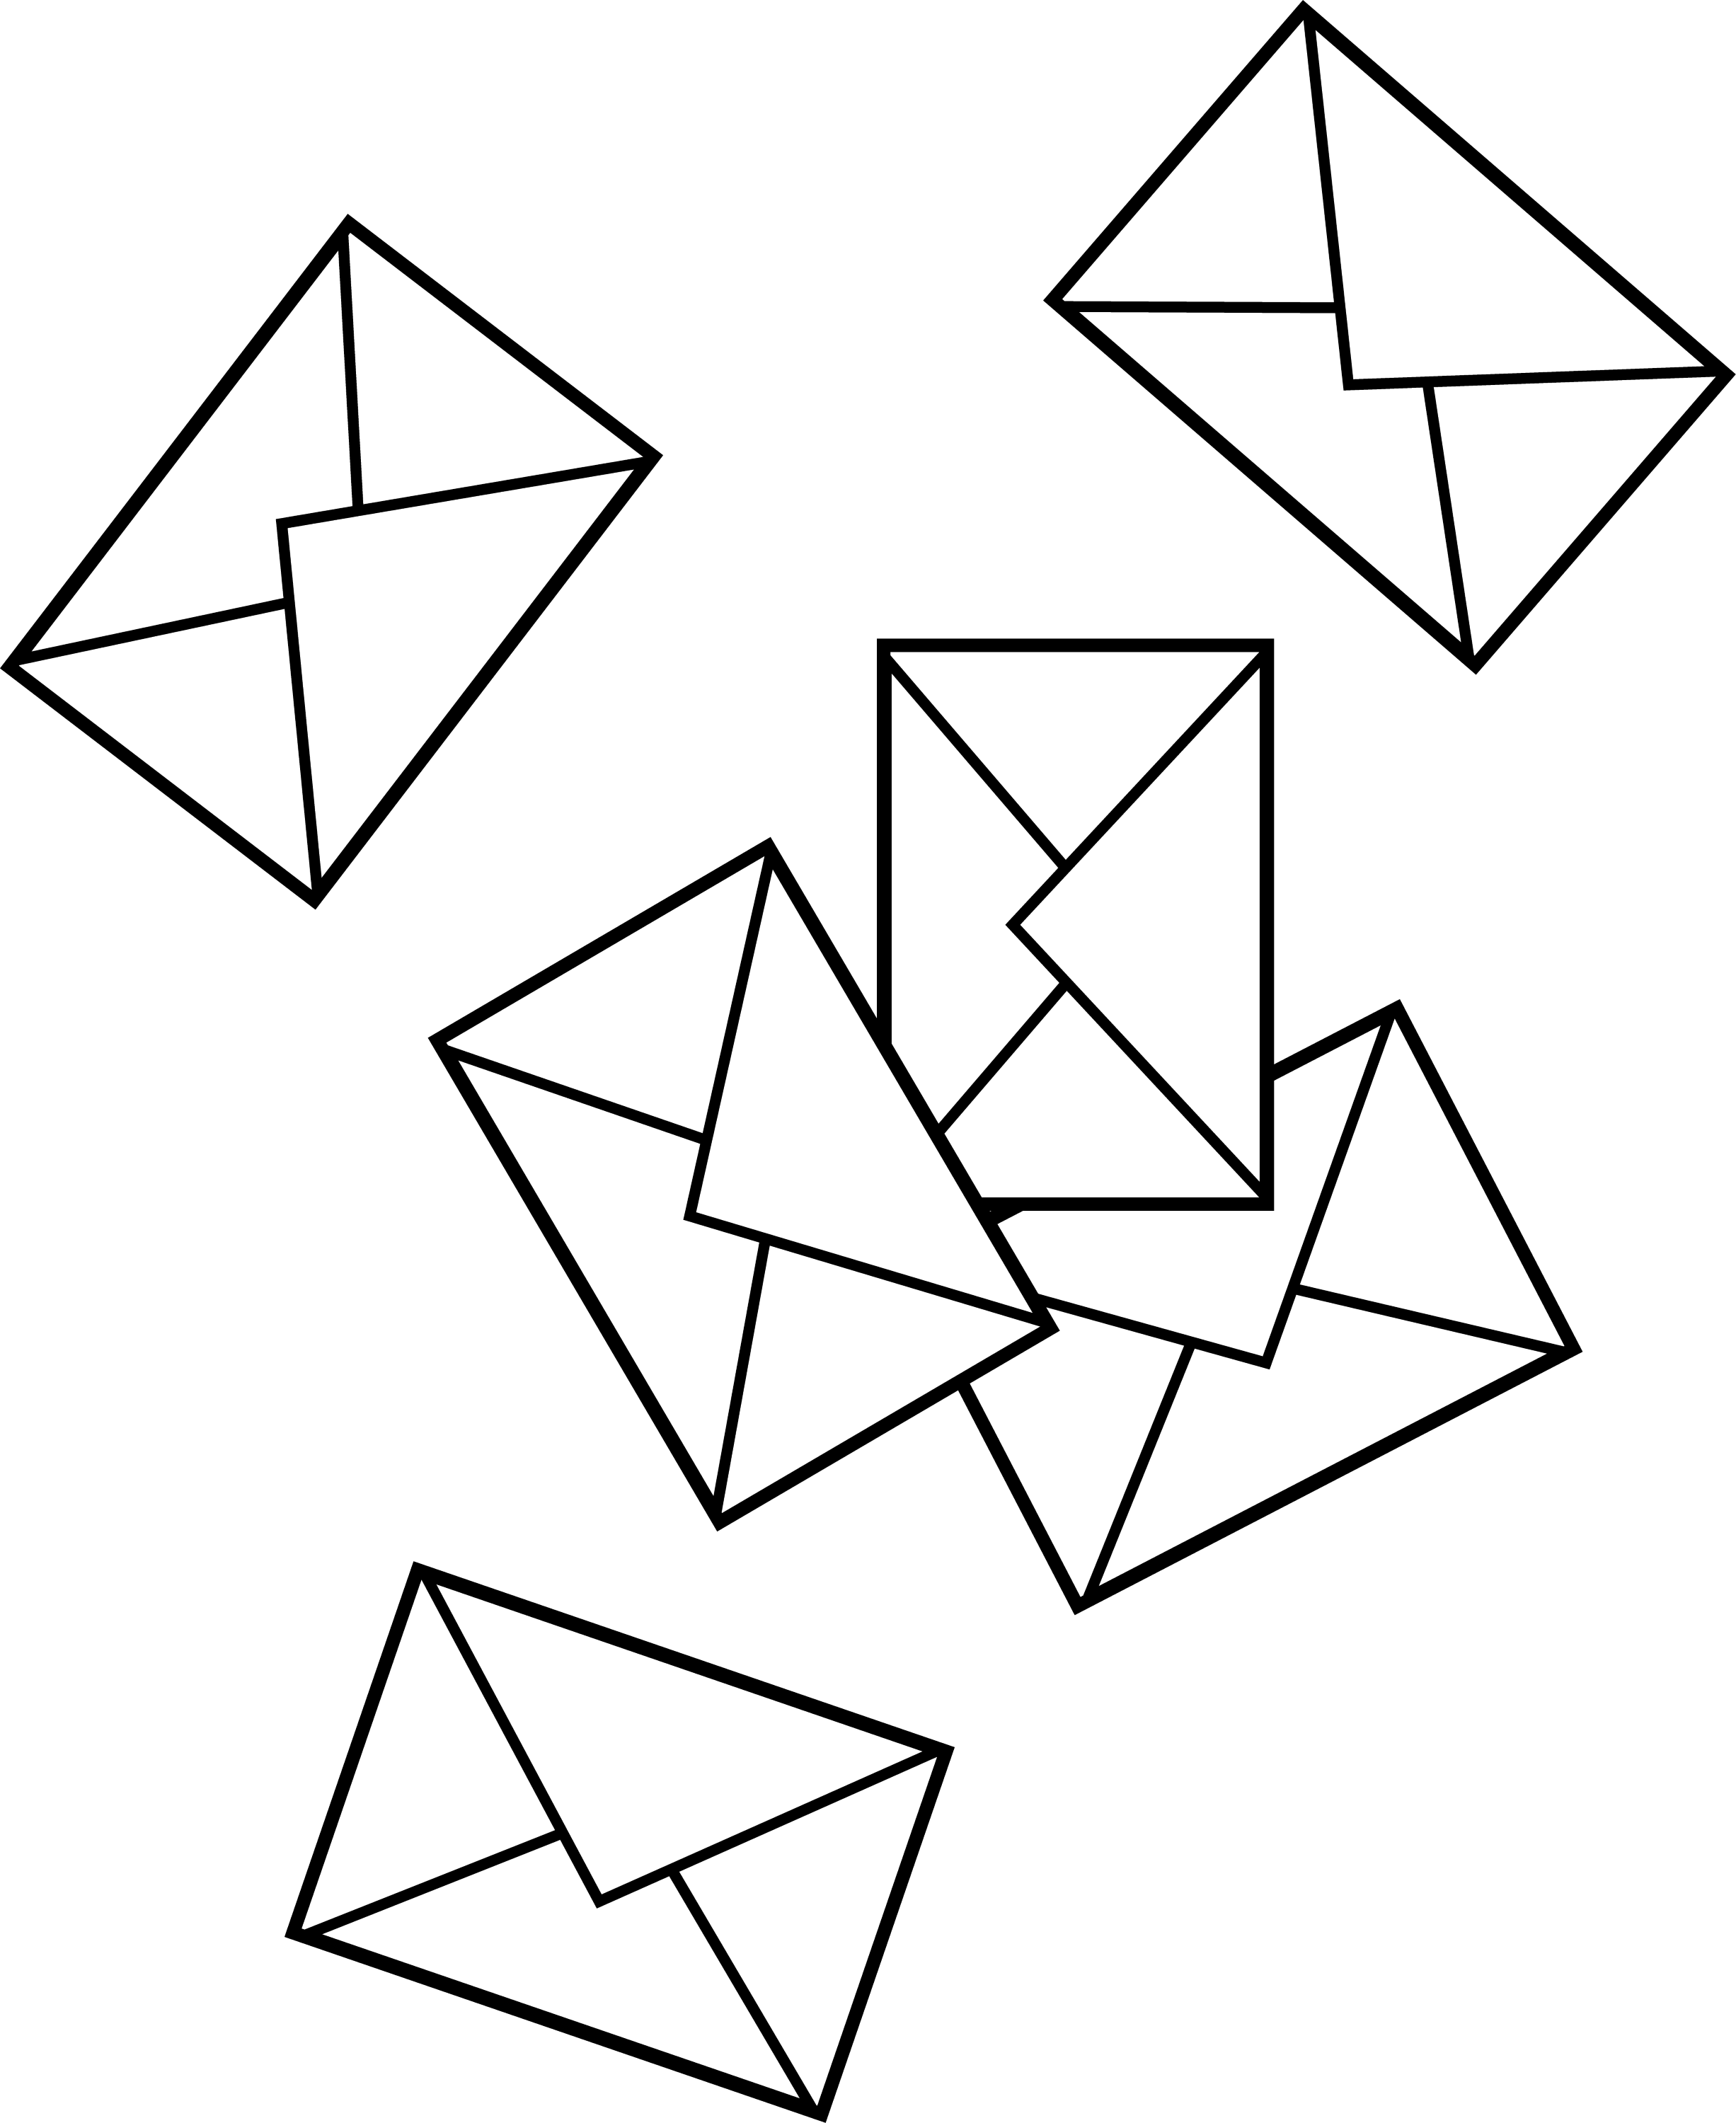 Suggestions Online | Images of Envelope Clipart Black And White